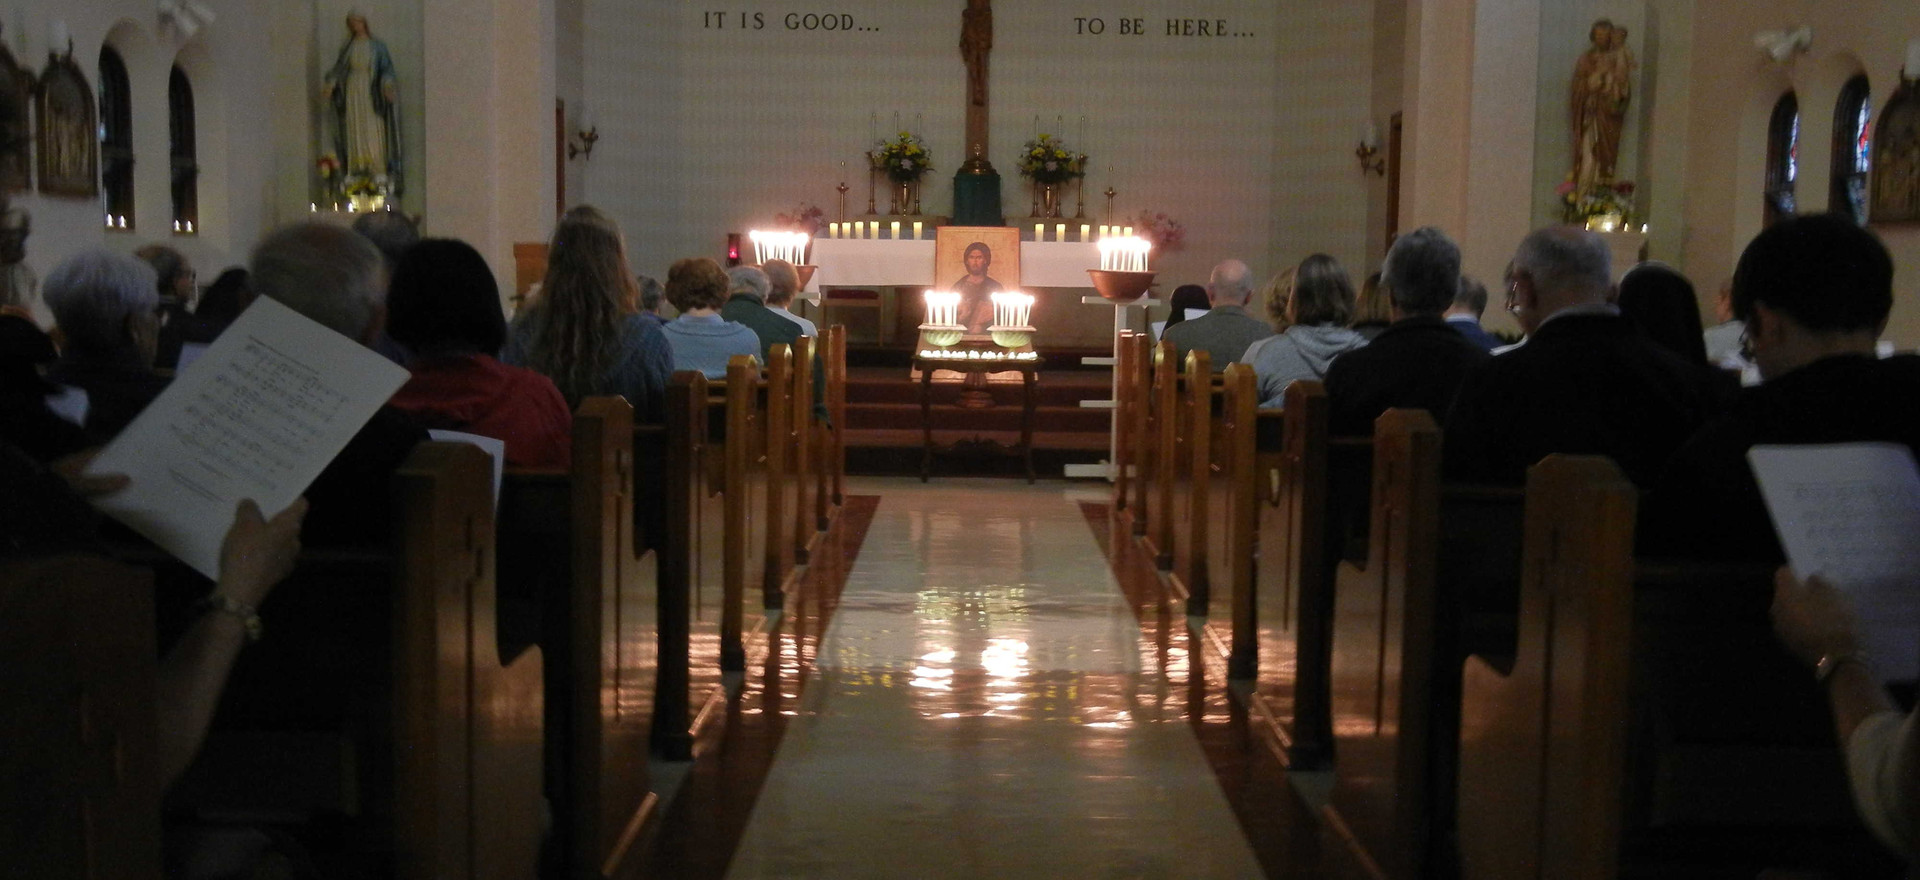 all of the candles stand in front of the chapel